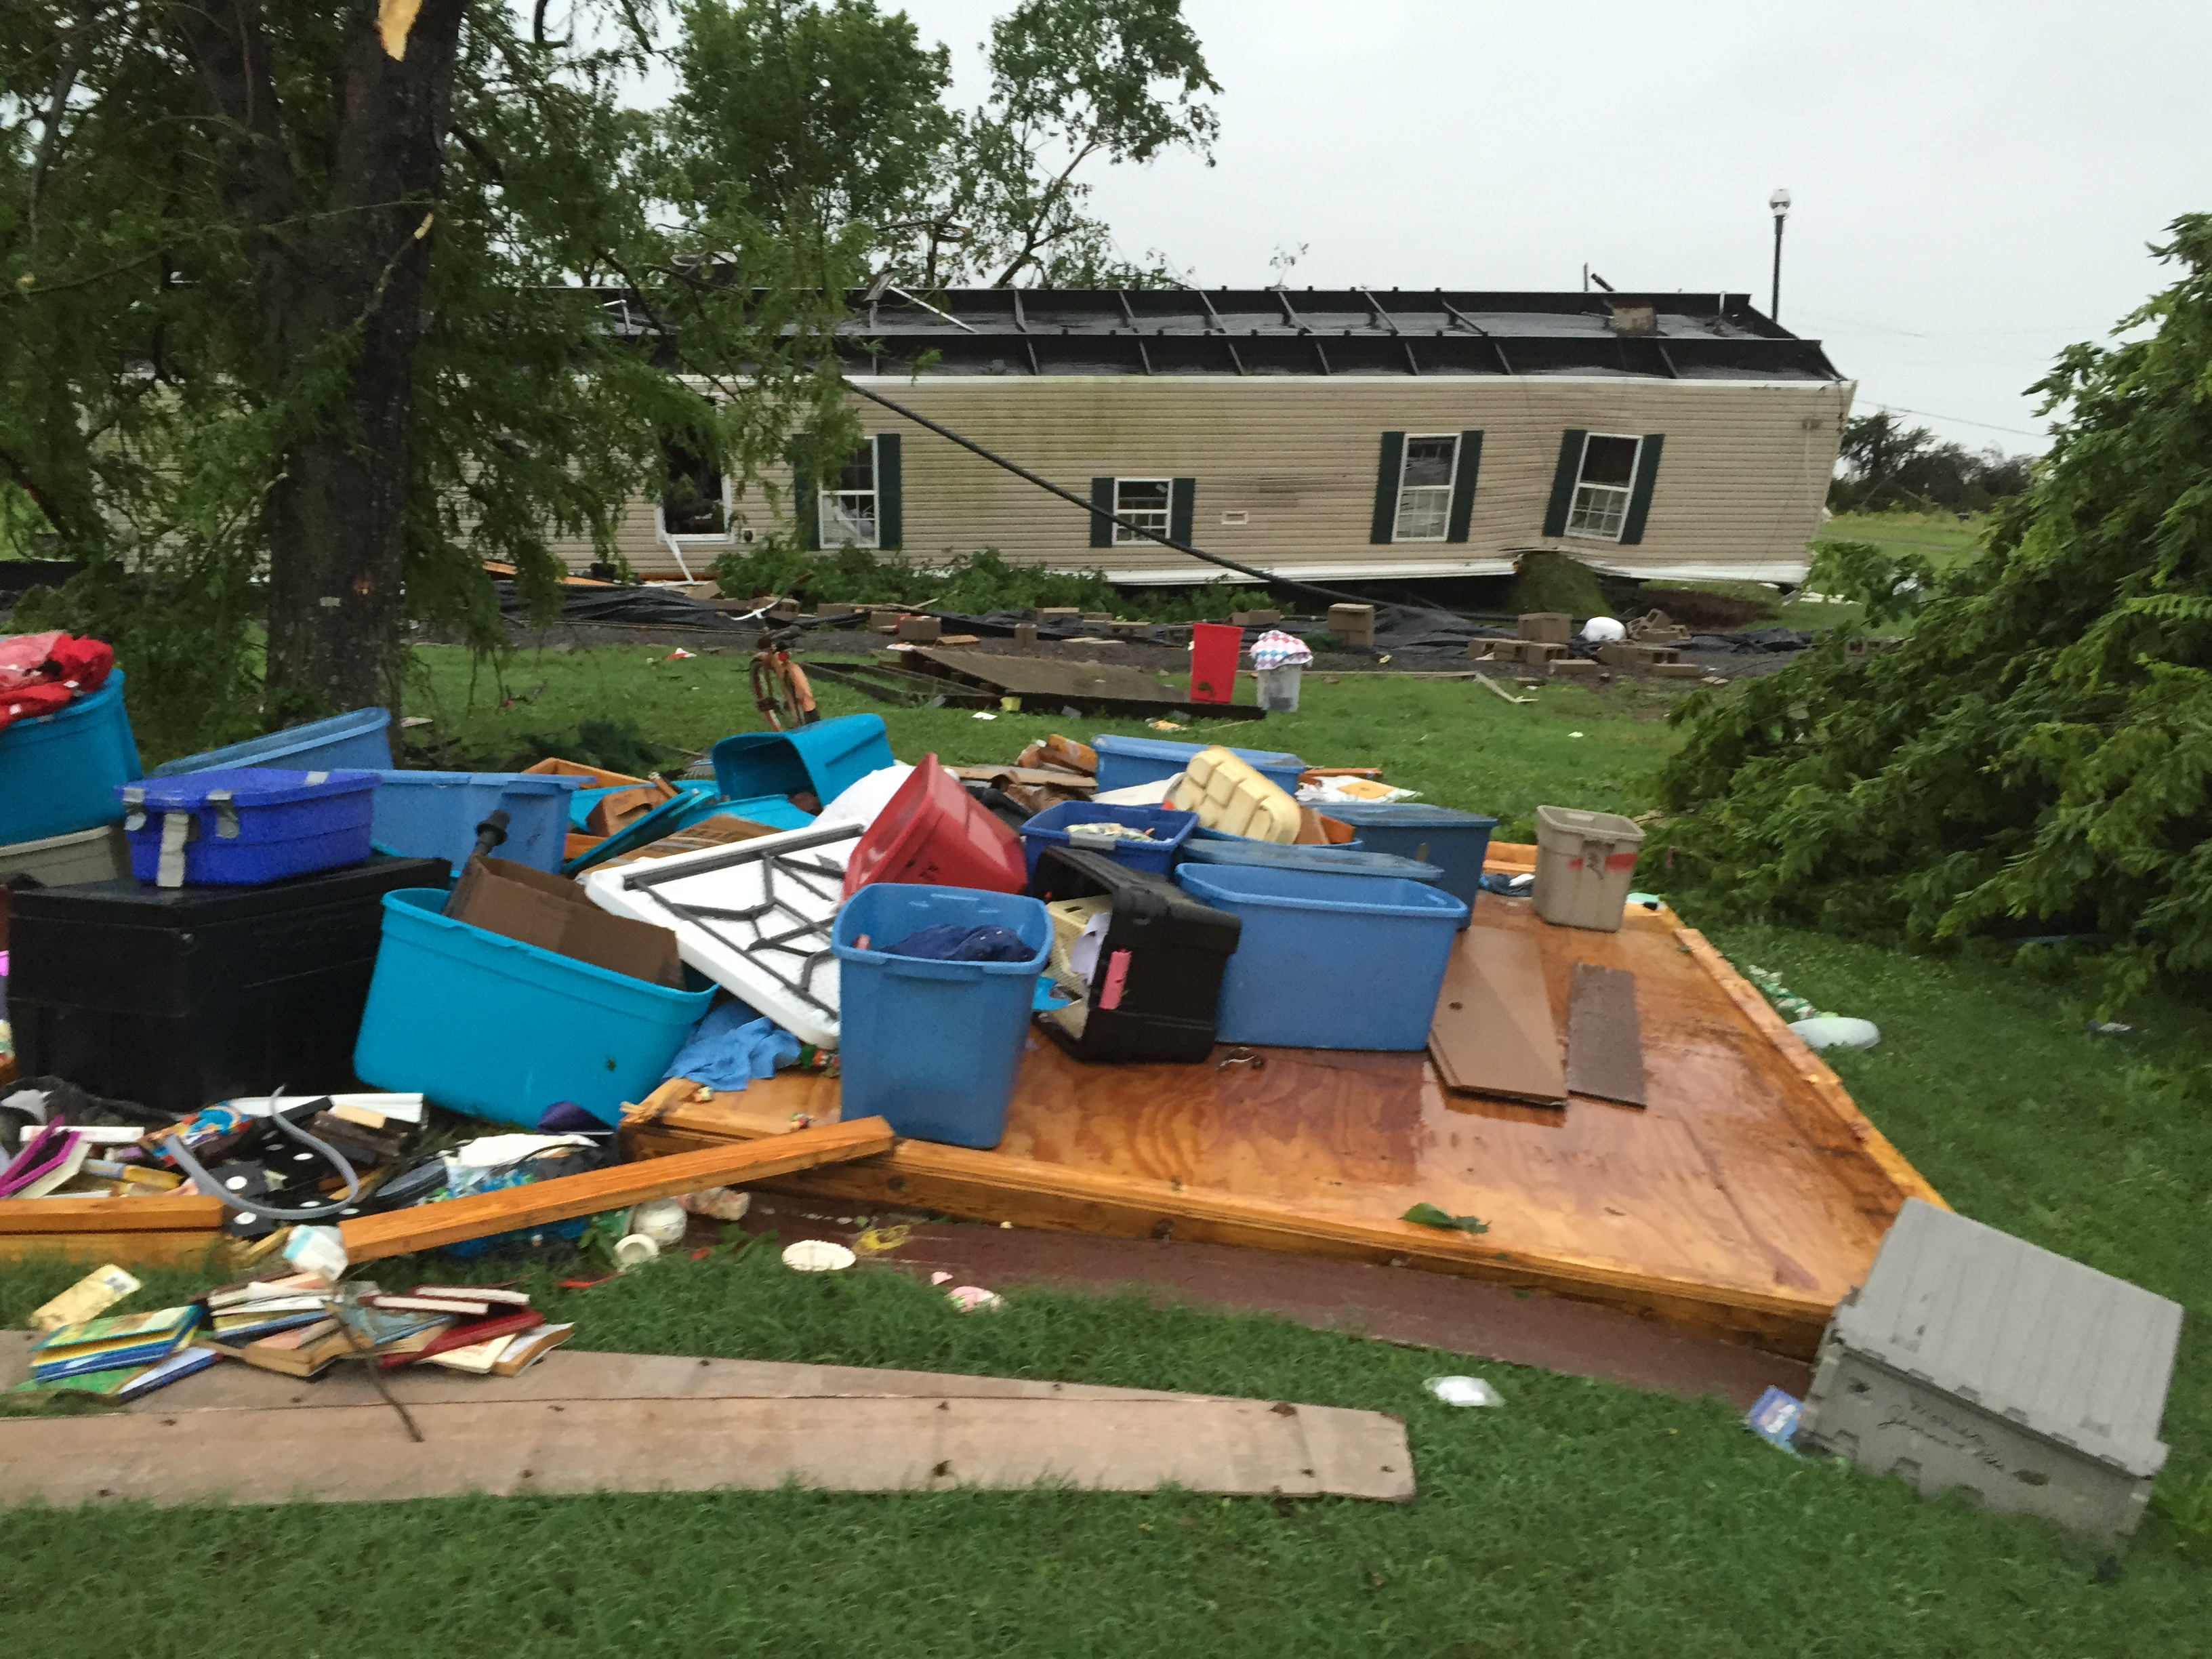 Overturned house in Leflore County.